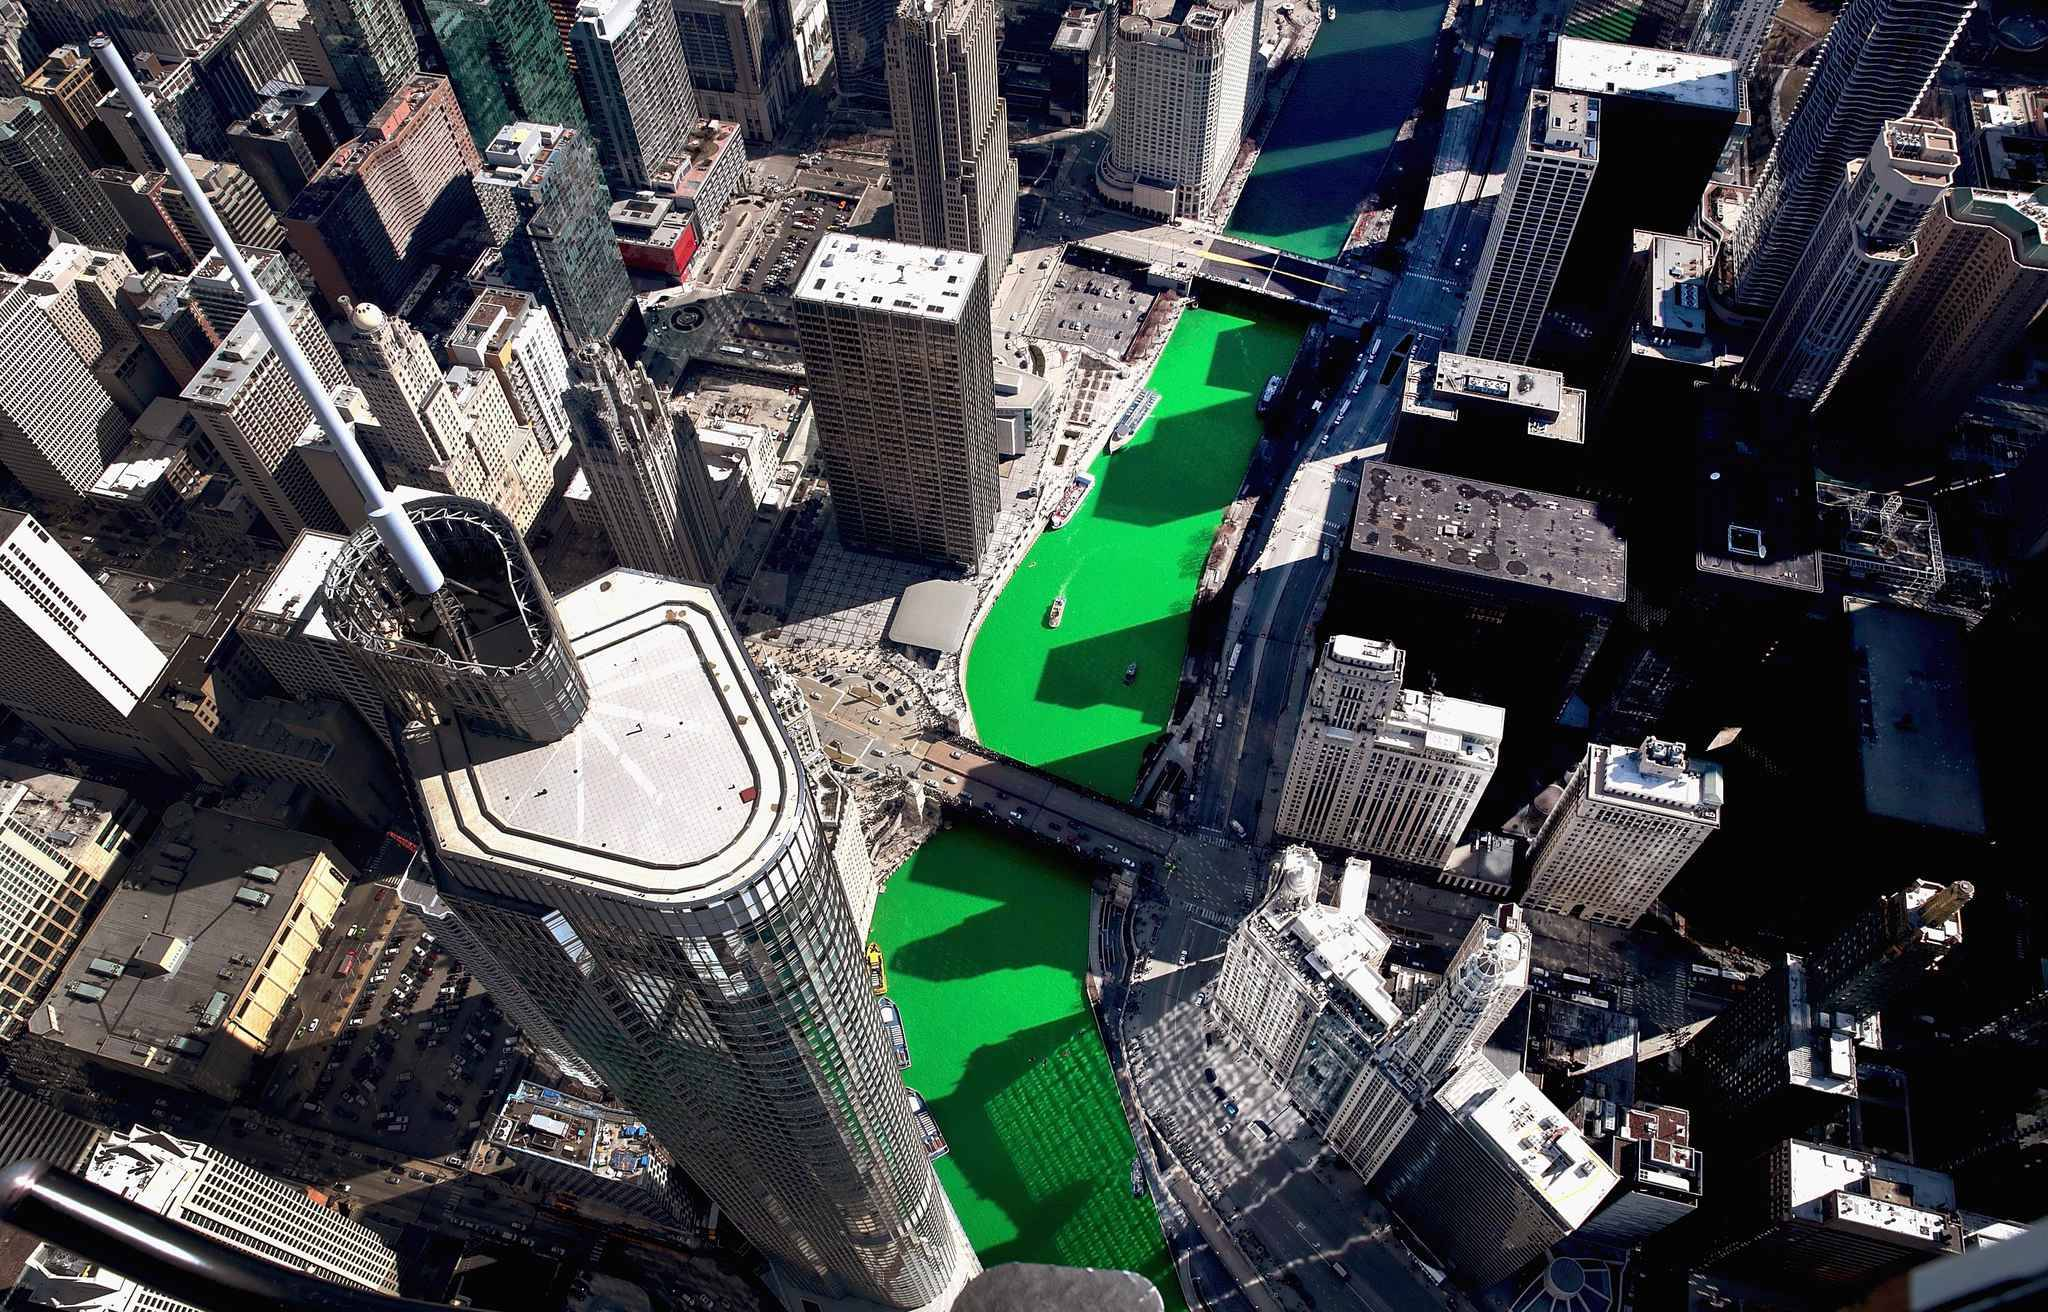 CHICAGO, ILLINOIS - MARCH 16: An aerial view of the Chicago River as it winds its way through downtown after being dyed green in celebration of St. Patrick's day on March 16, 2019 in Chicago, Illinois. Dyeing the river green has been a St. Patrick's Day tradition in the city since 1962.